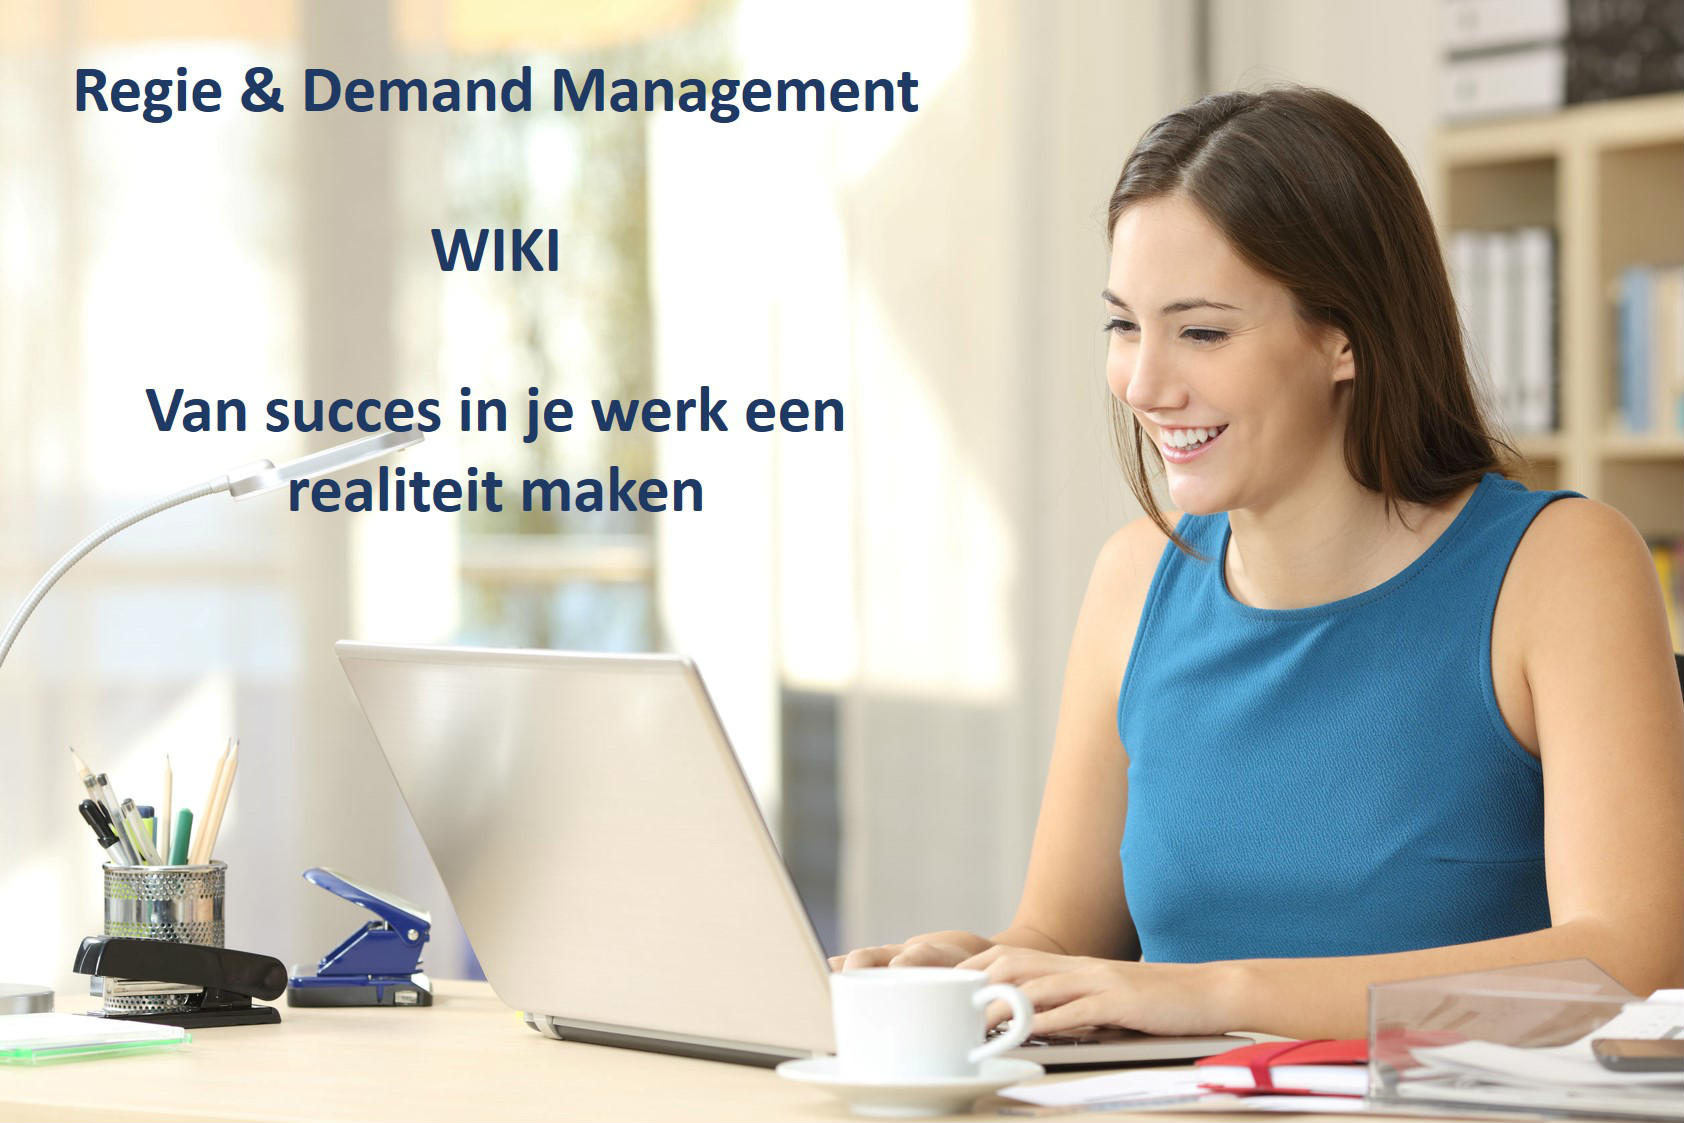 regie en demand management wiki